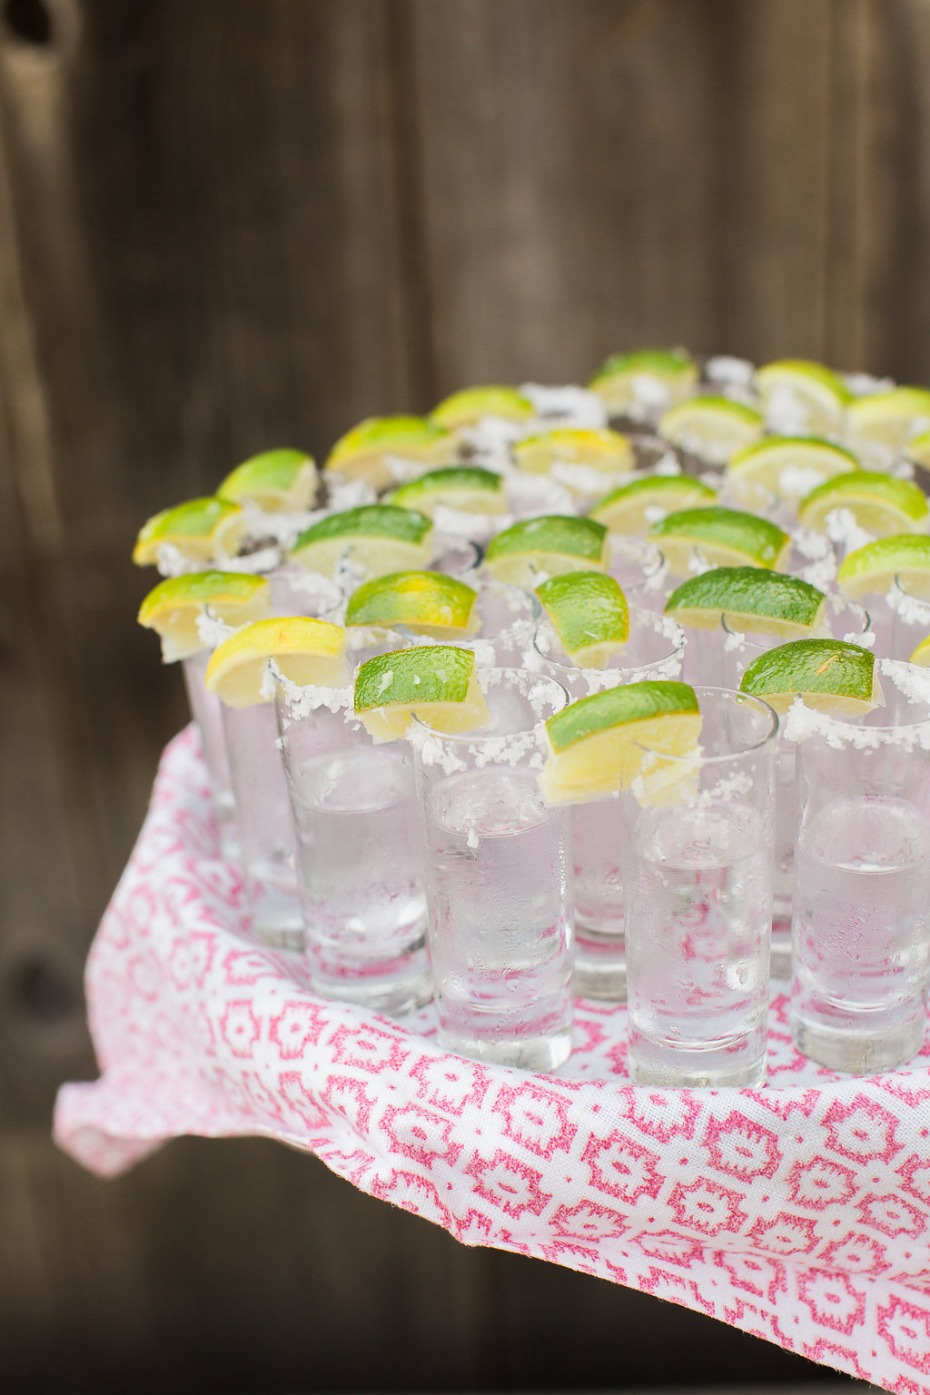 Tequila shots for a wedding